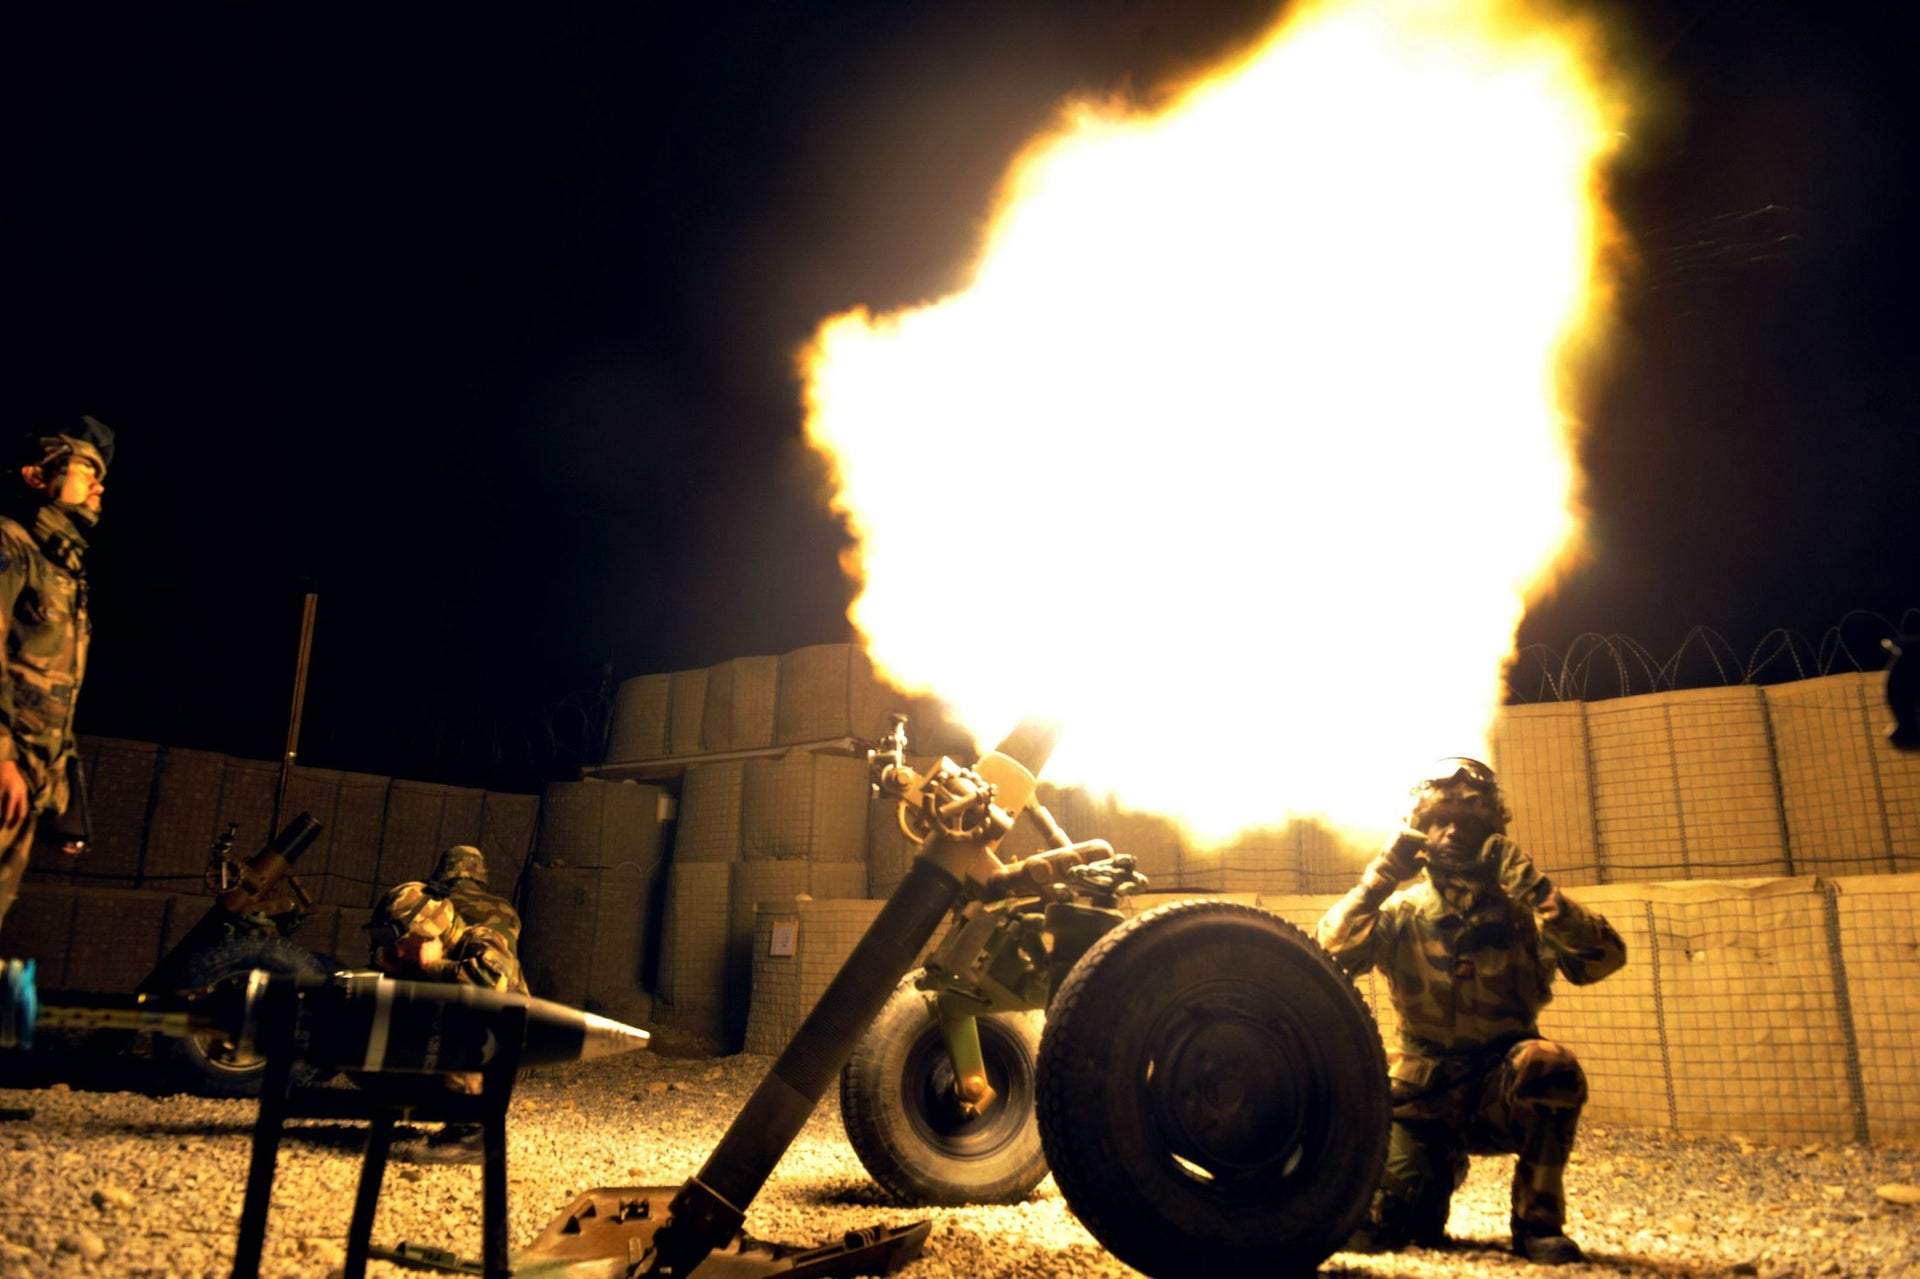 French soldiers of the first regiment of marine artillery fire a mortar at their base during an exercise in Surobi district of Kabul province, March 12, 2012.